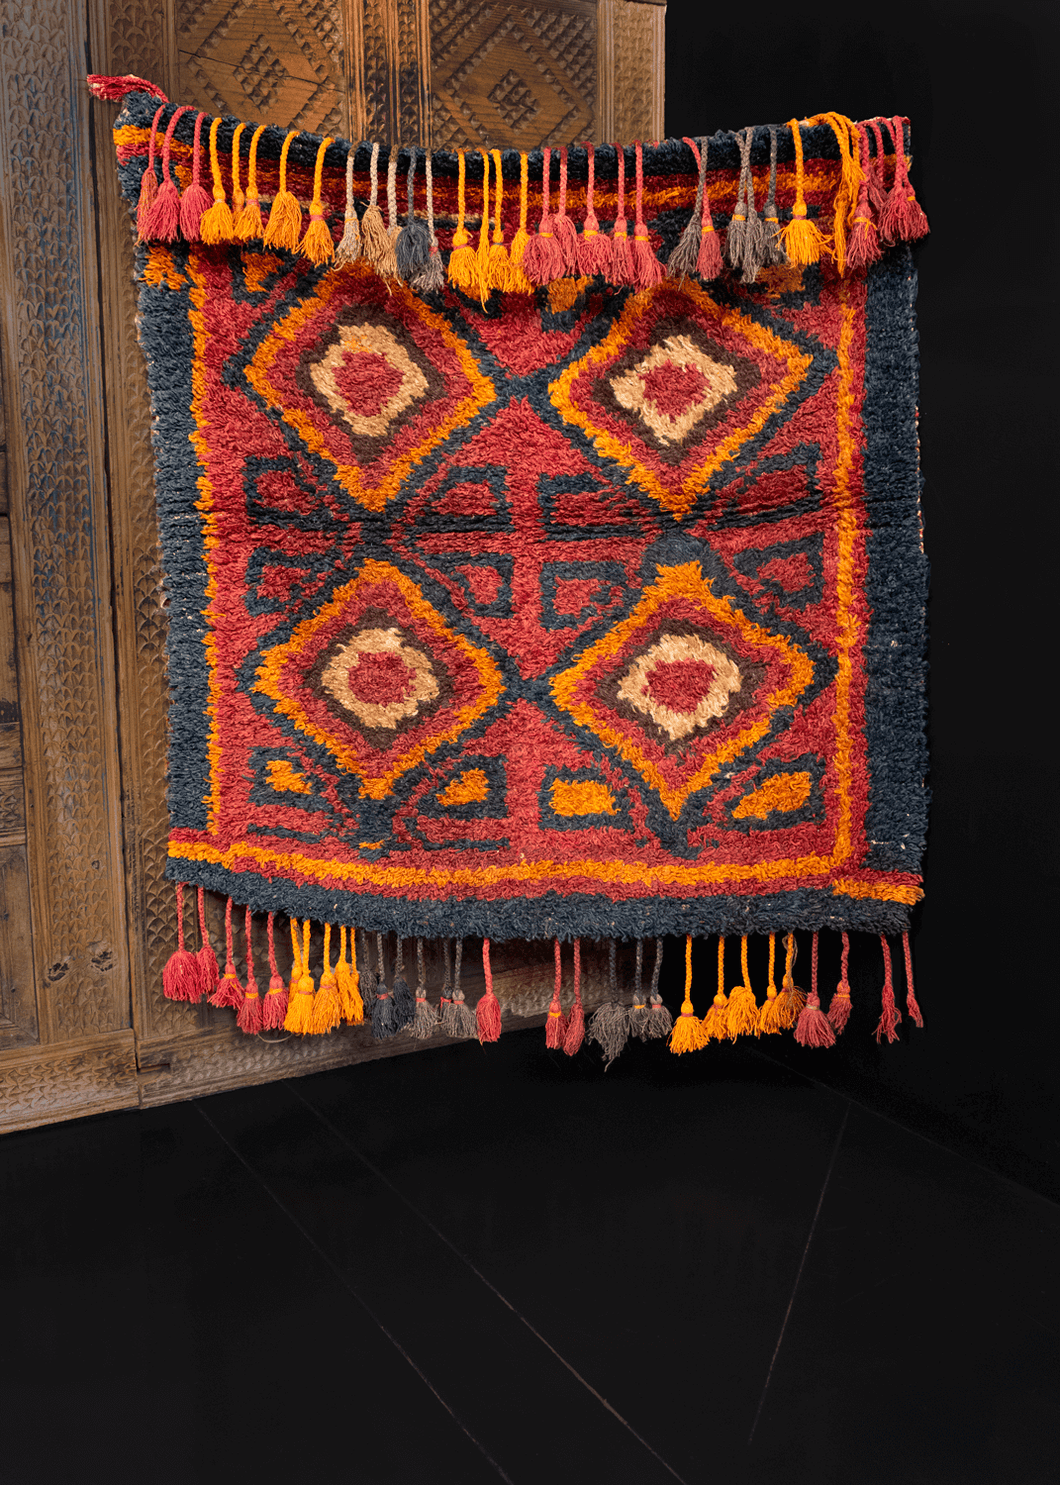 Vintage Julkhyr handwoven during third quarter of 20th century in Uzbekistan. Four diamond devices with surrounding polygons. Red and orange with black outlining and framing.